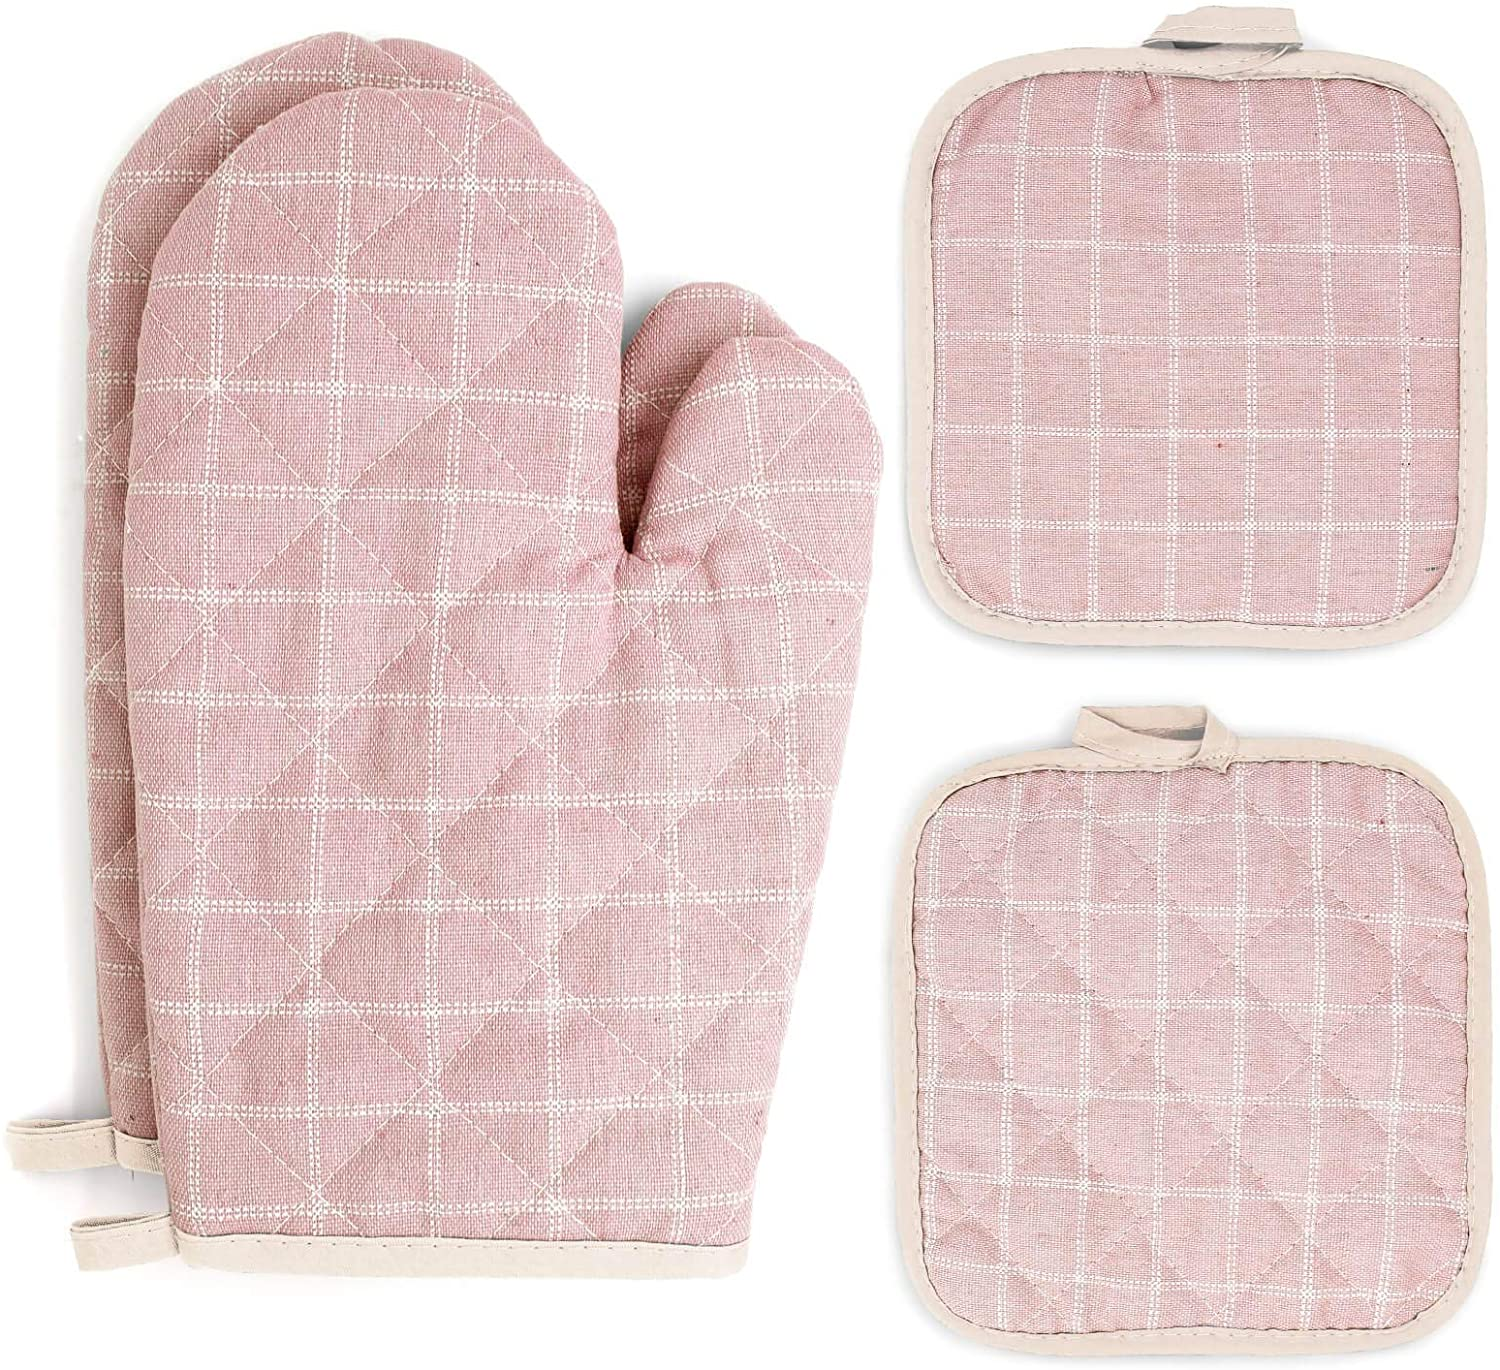 Pretty Jolly Oven Mitts and Pot Holders Sets 4 pcs, Pink Oven Mitt Set with Potholders for Kitchen Heat Resistant, Hot Pads and Oven Mitts Sets Kitchen Mittens Home Cooking Baking Mitts for Woman